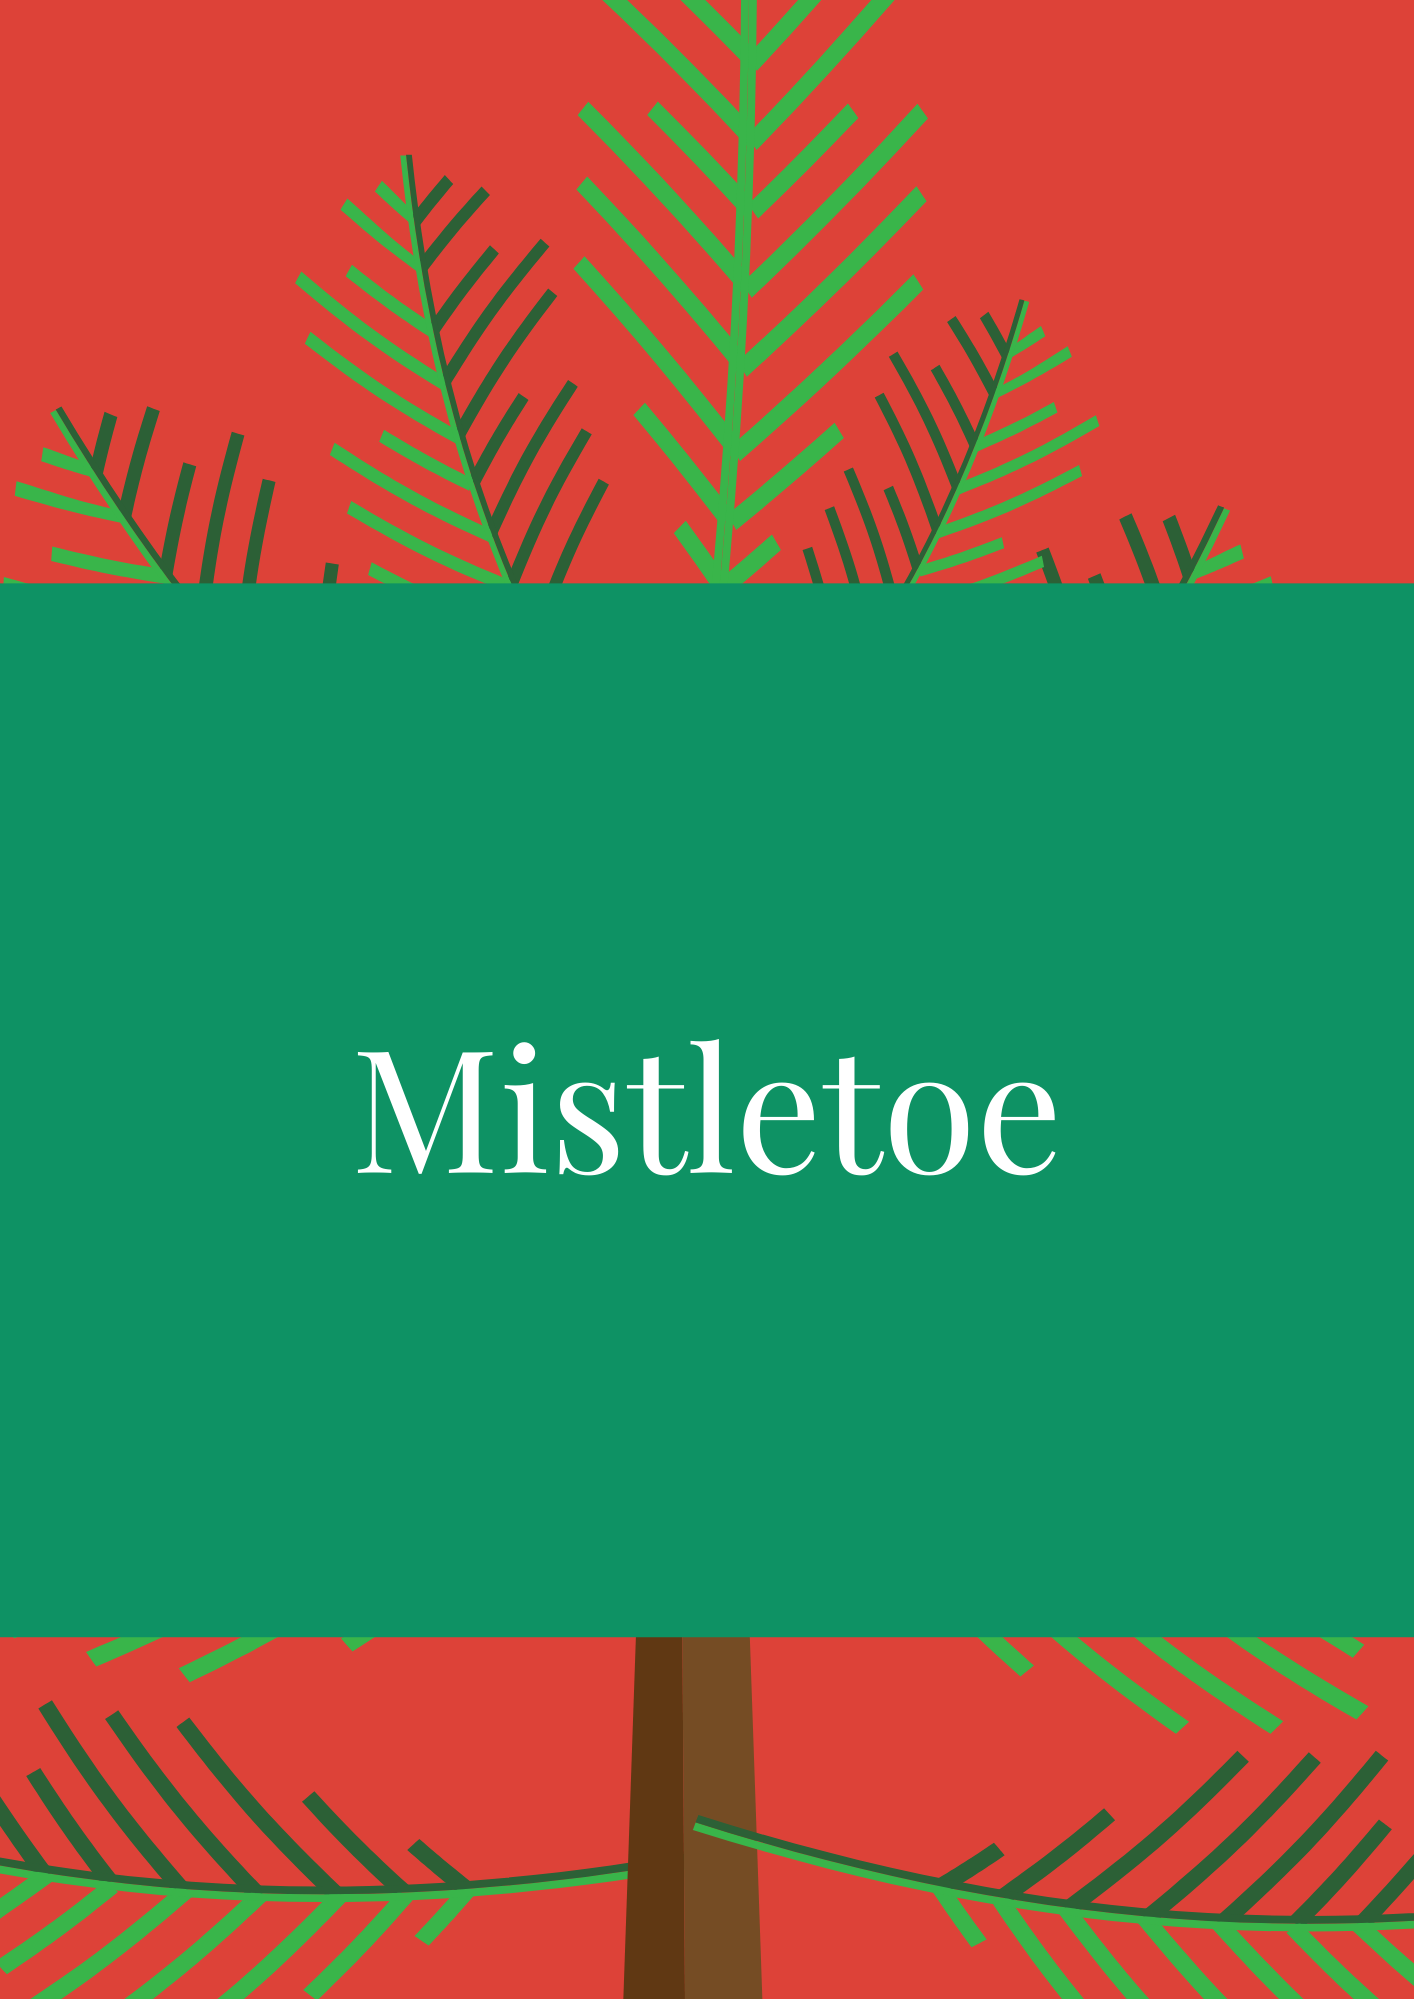 Mistletoe Elf Names